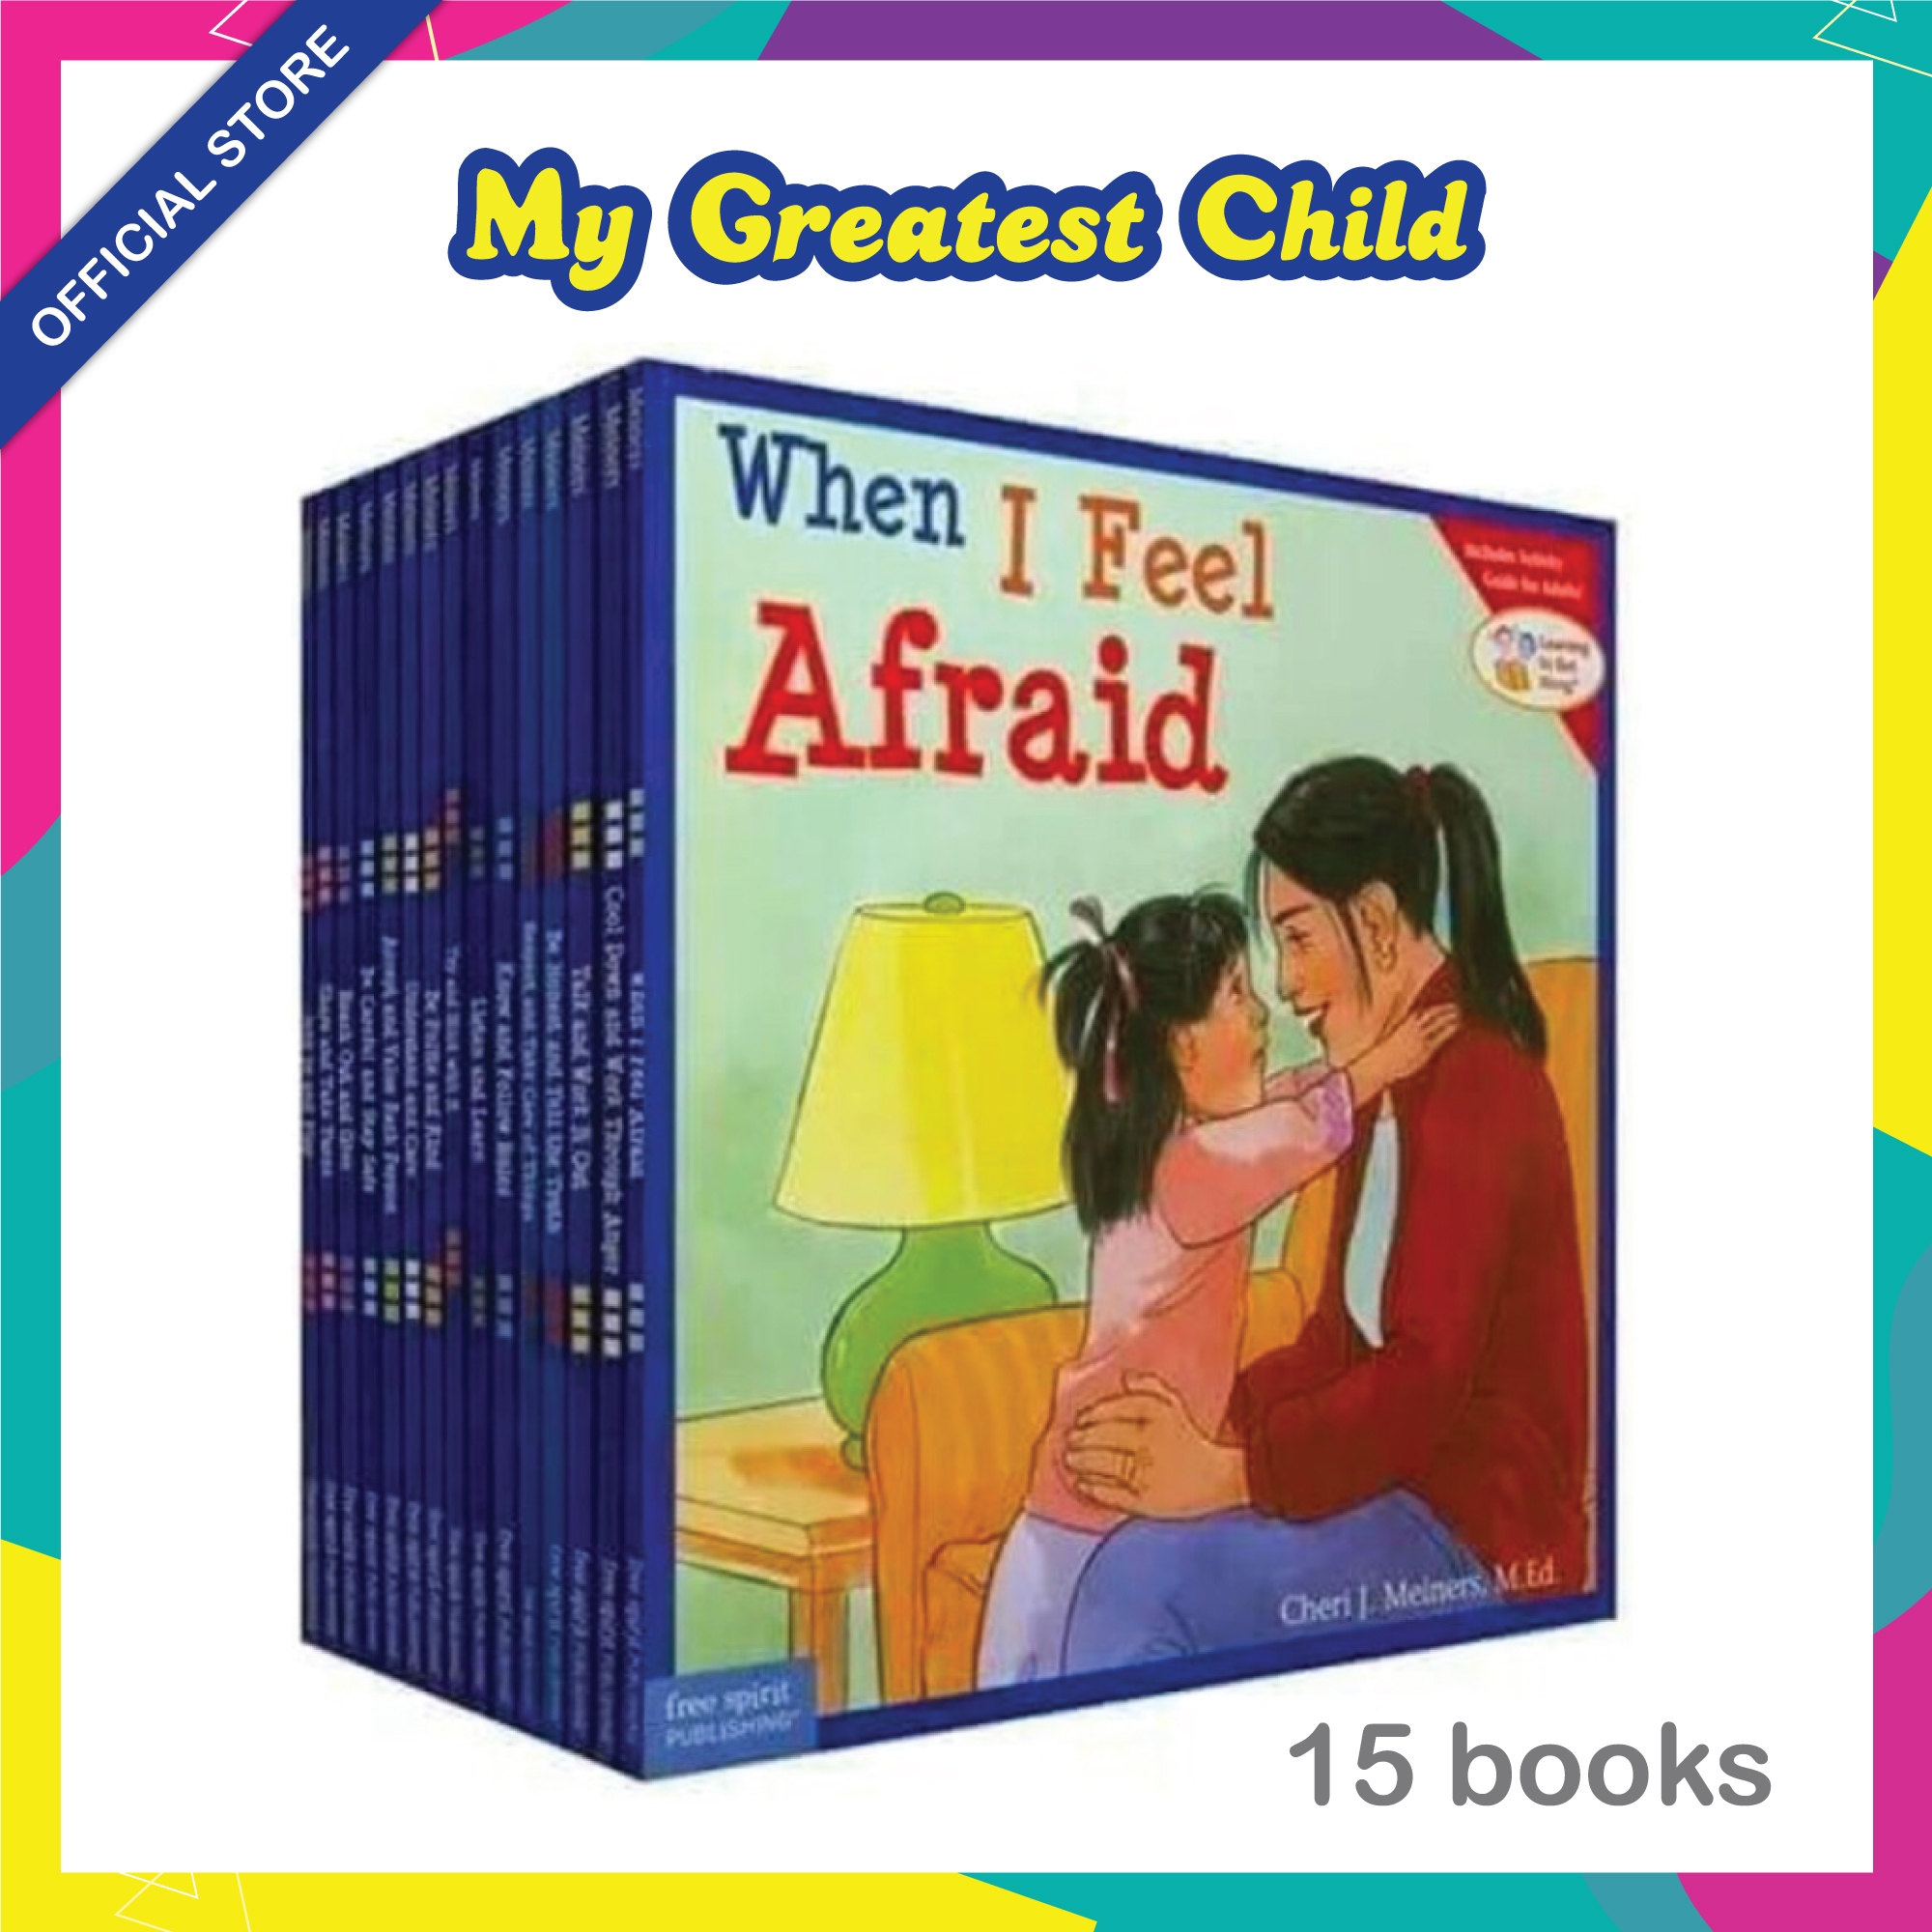 15 Books/paperback Moral set Learning to Get Along series by Cheri J. Meiners Children Book 4-8 years old imported from UK